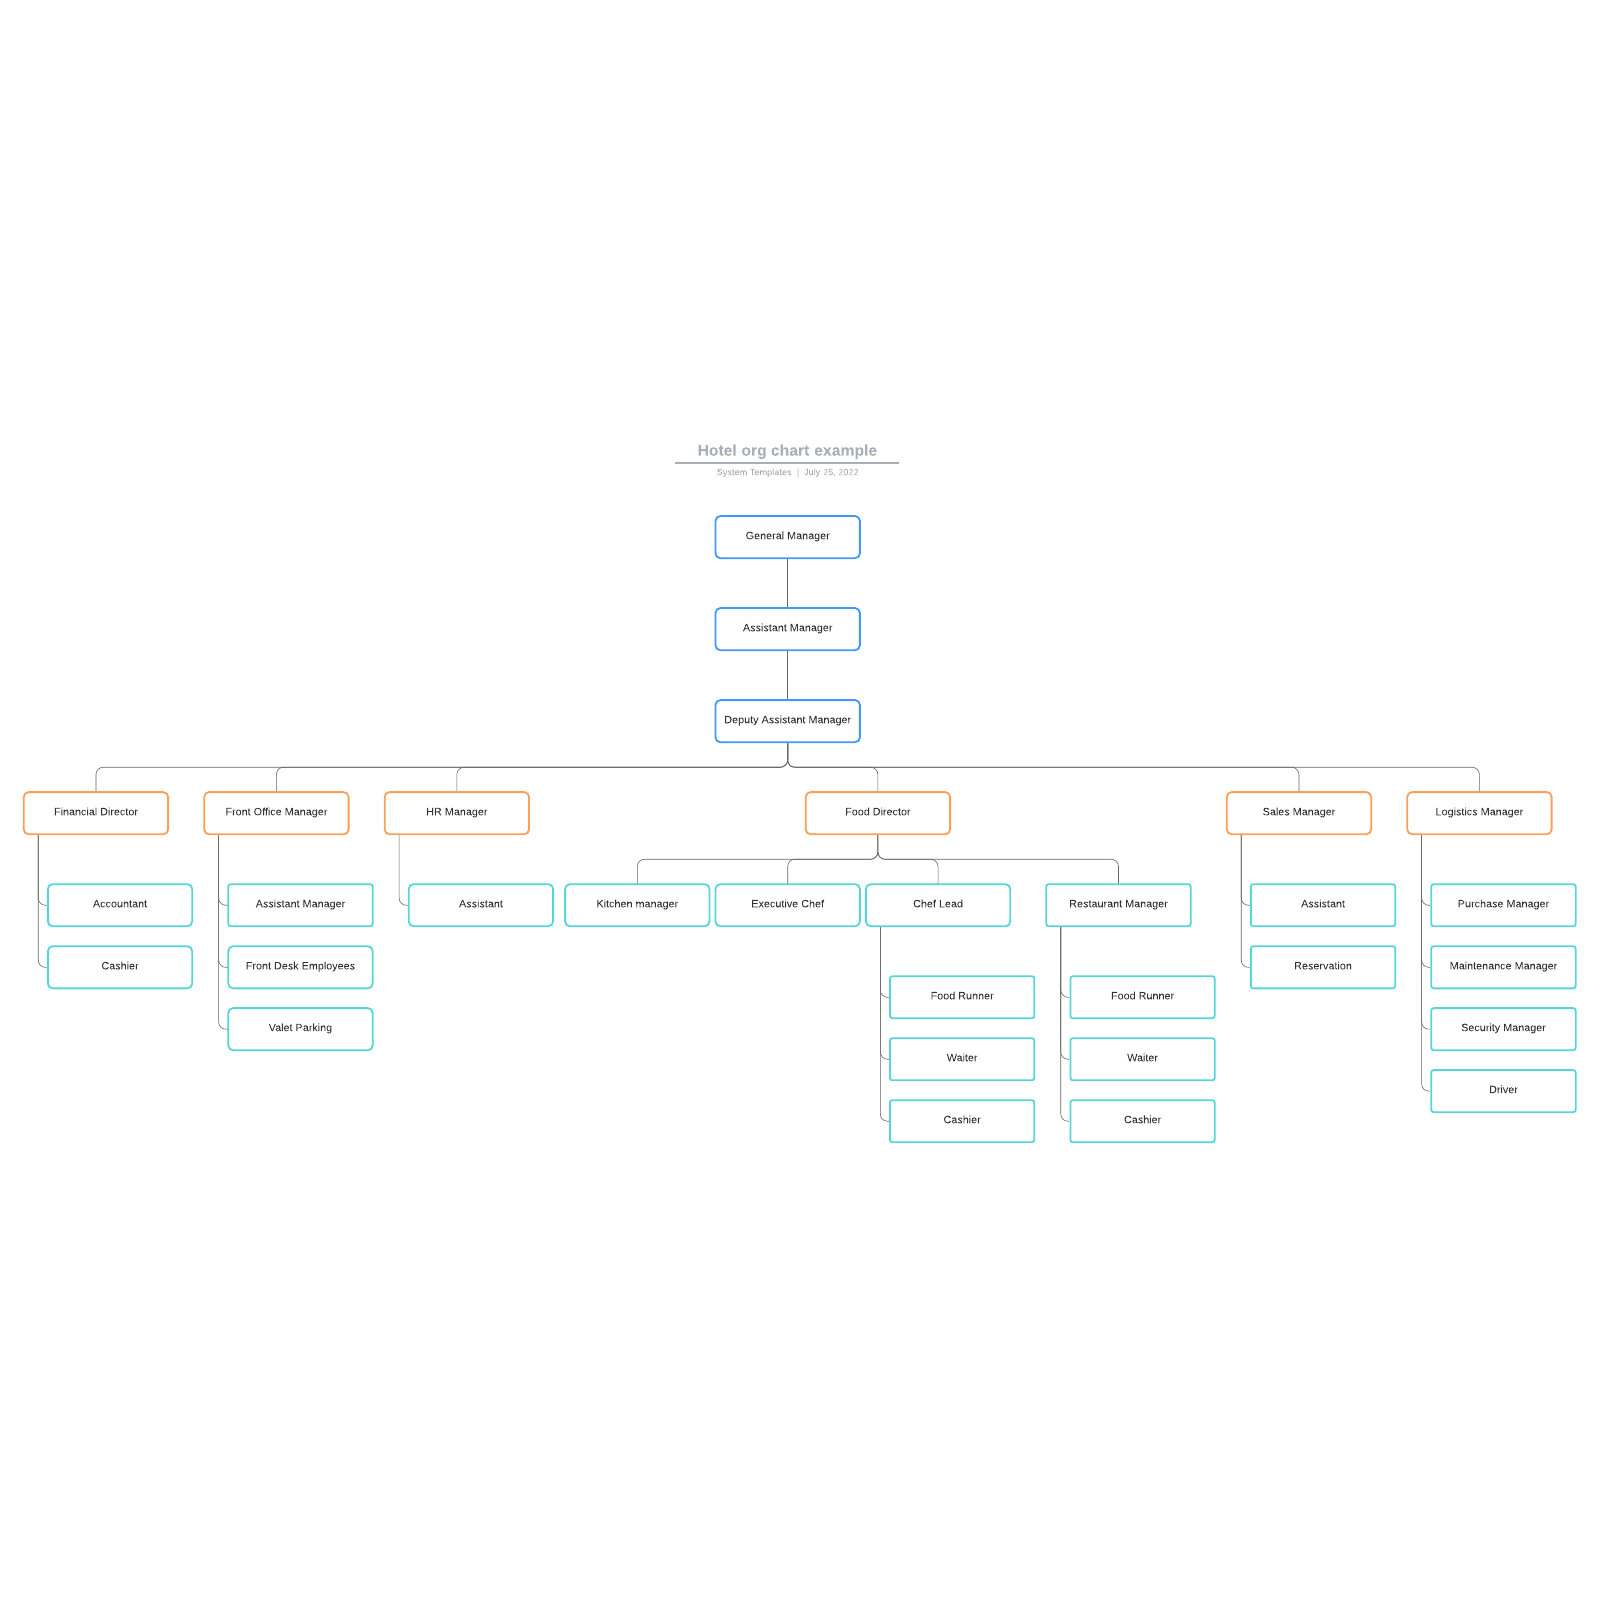 Hotel org chart example